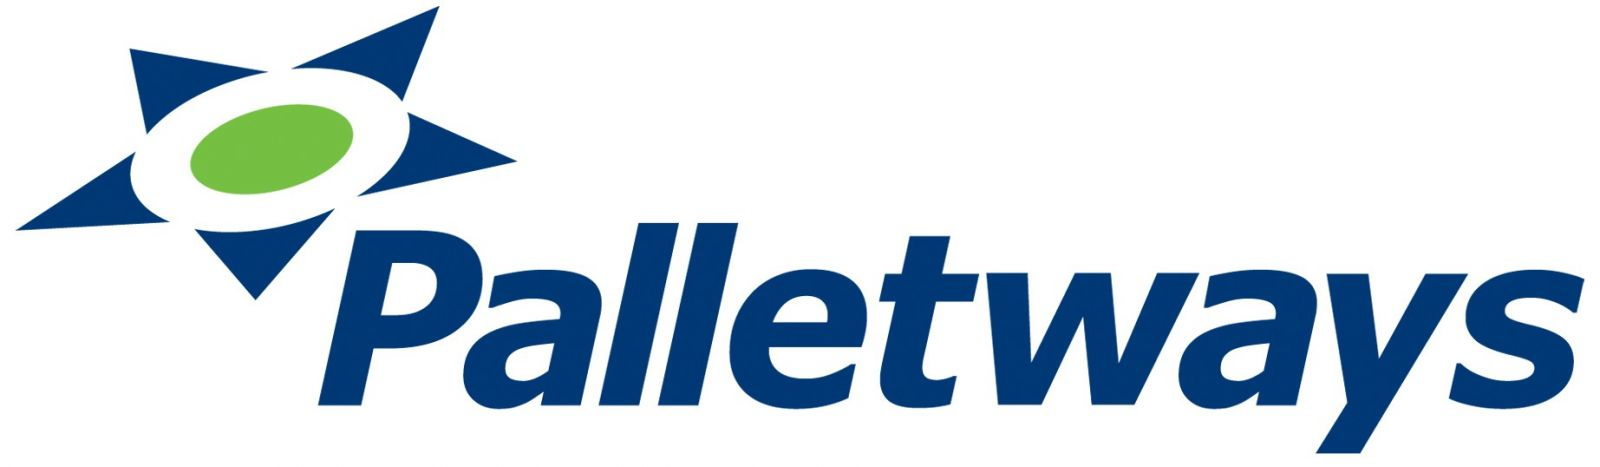 palletways logo